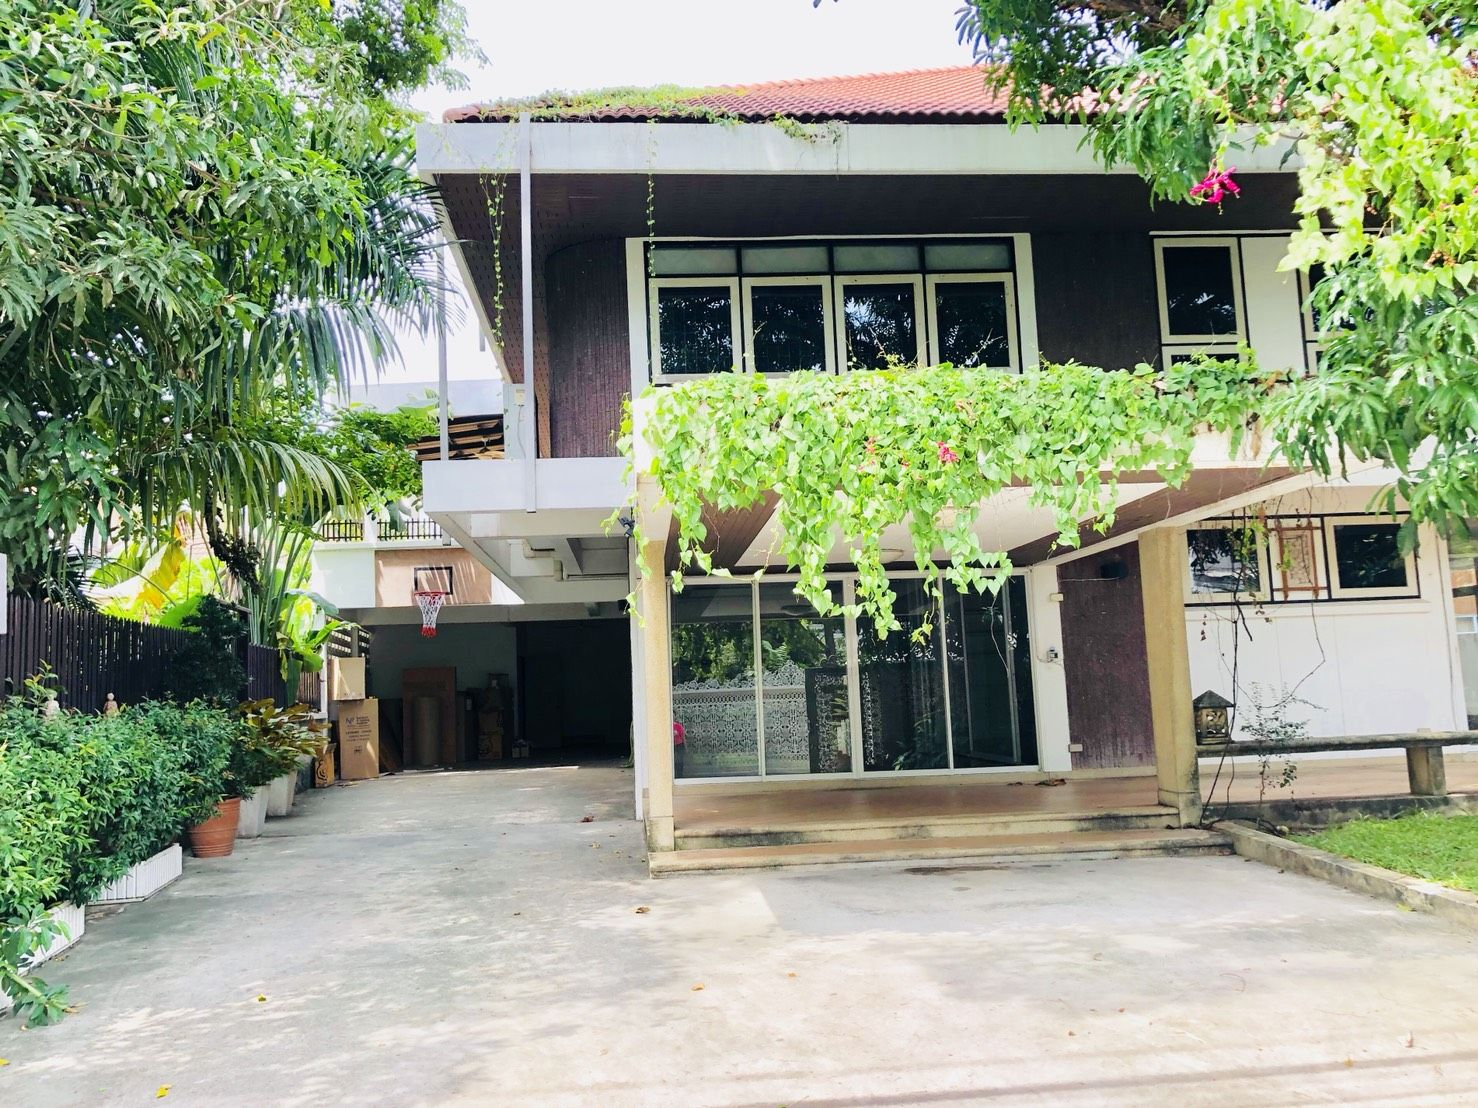 House For Rent Pet Friendly Near Me Renting a house